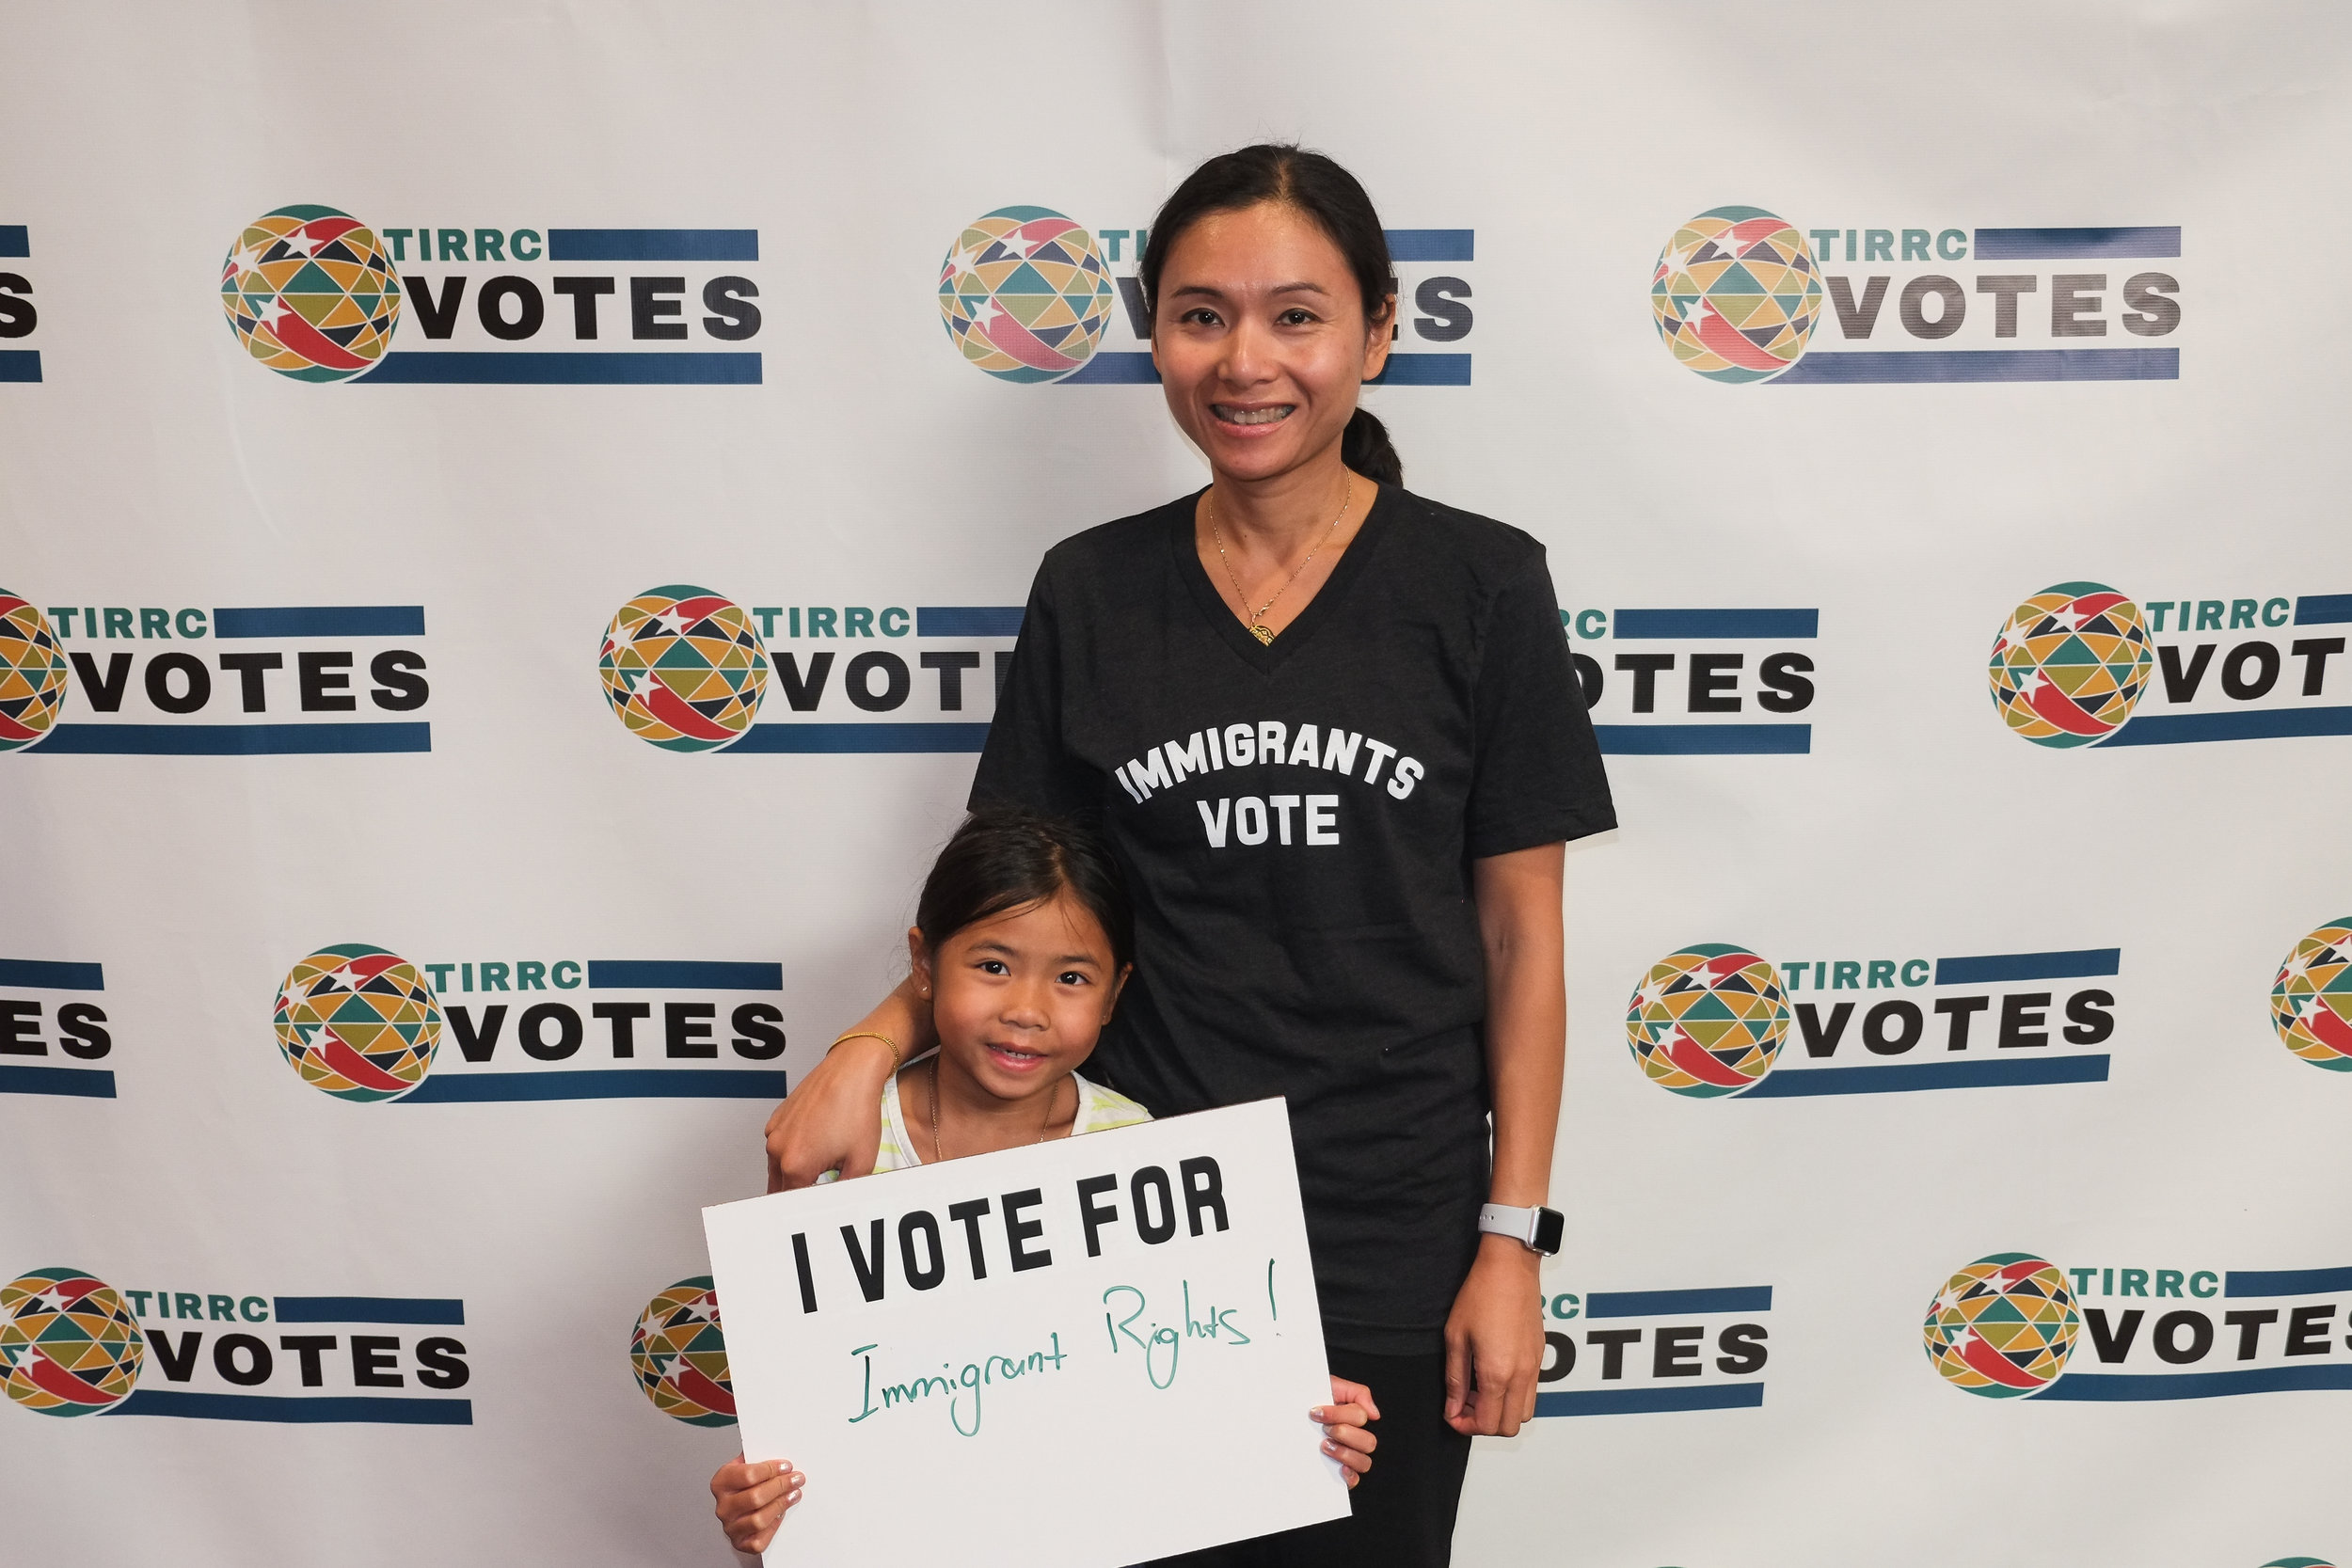 TIRRCVotes-PhotoBooth-8.jpg